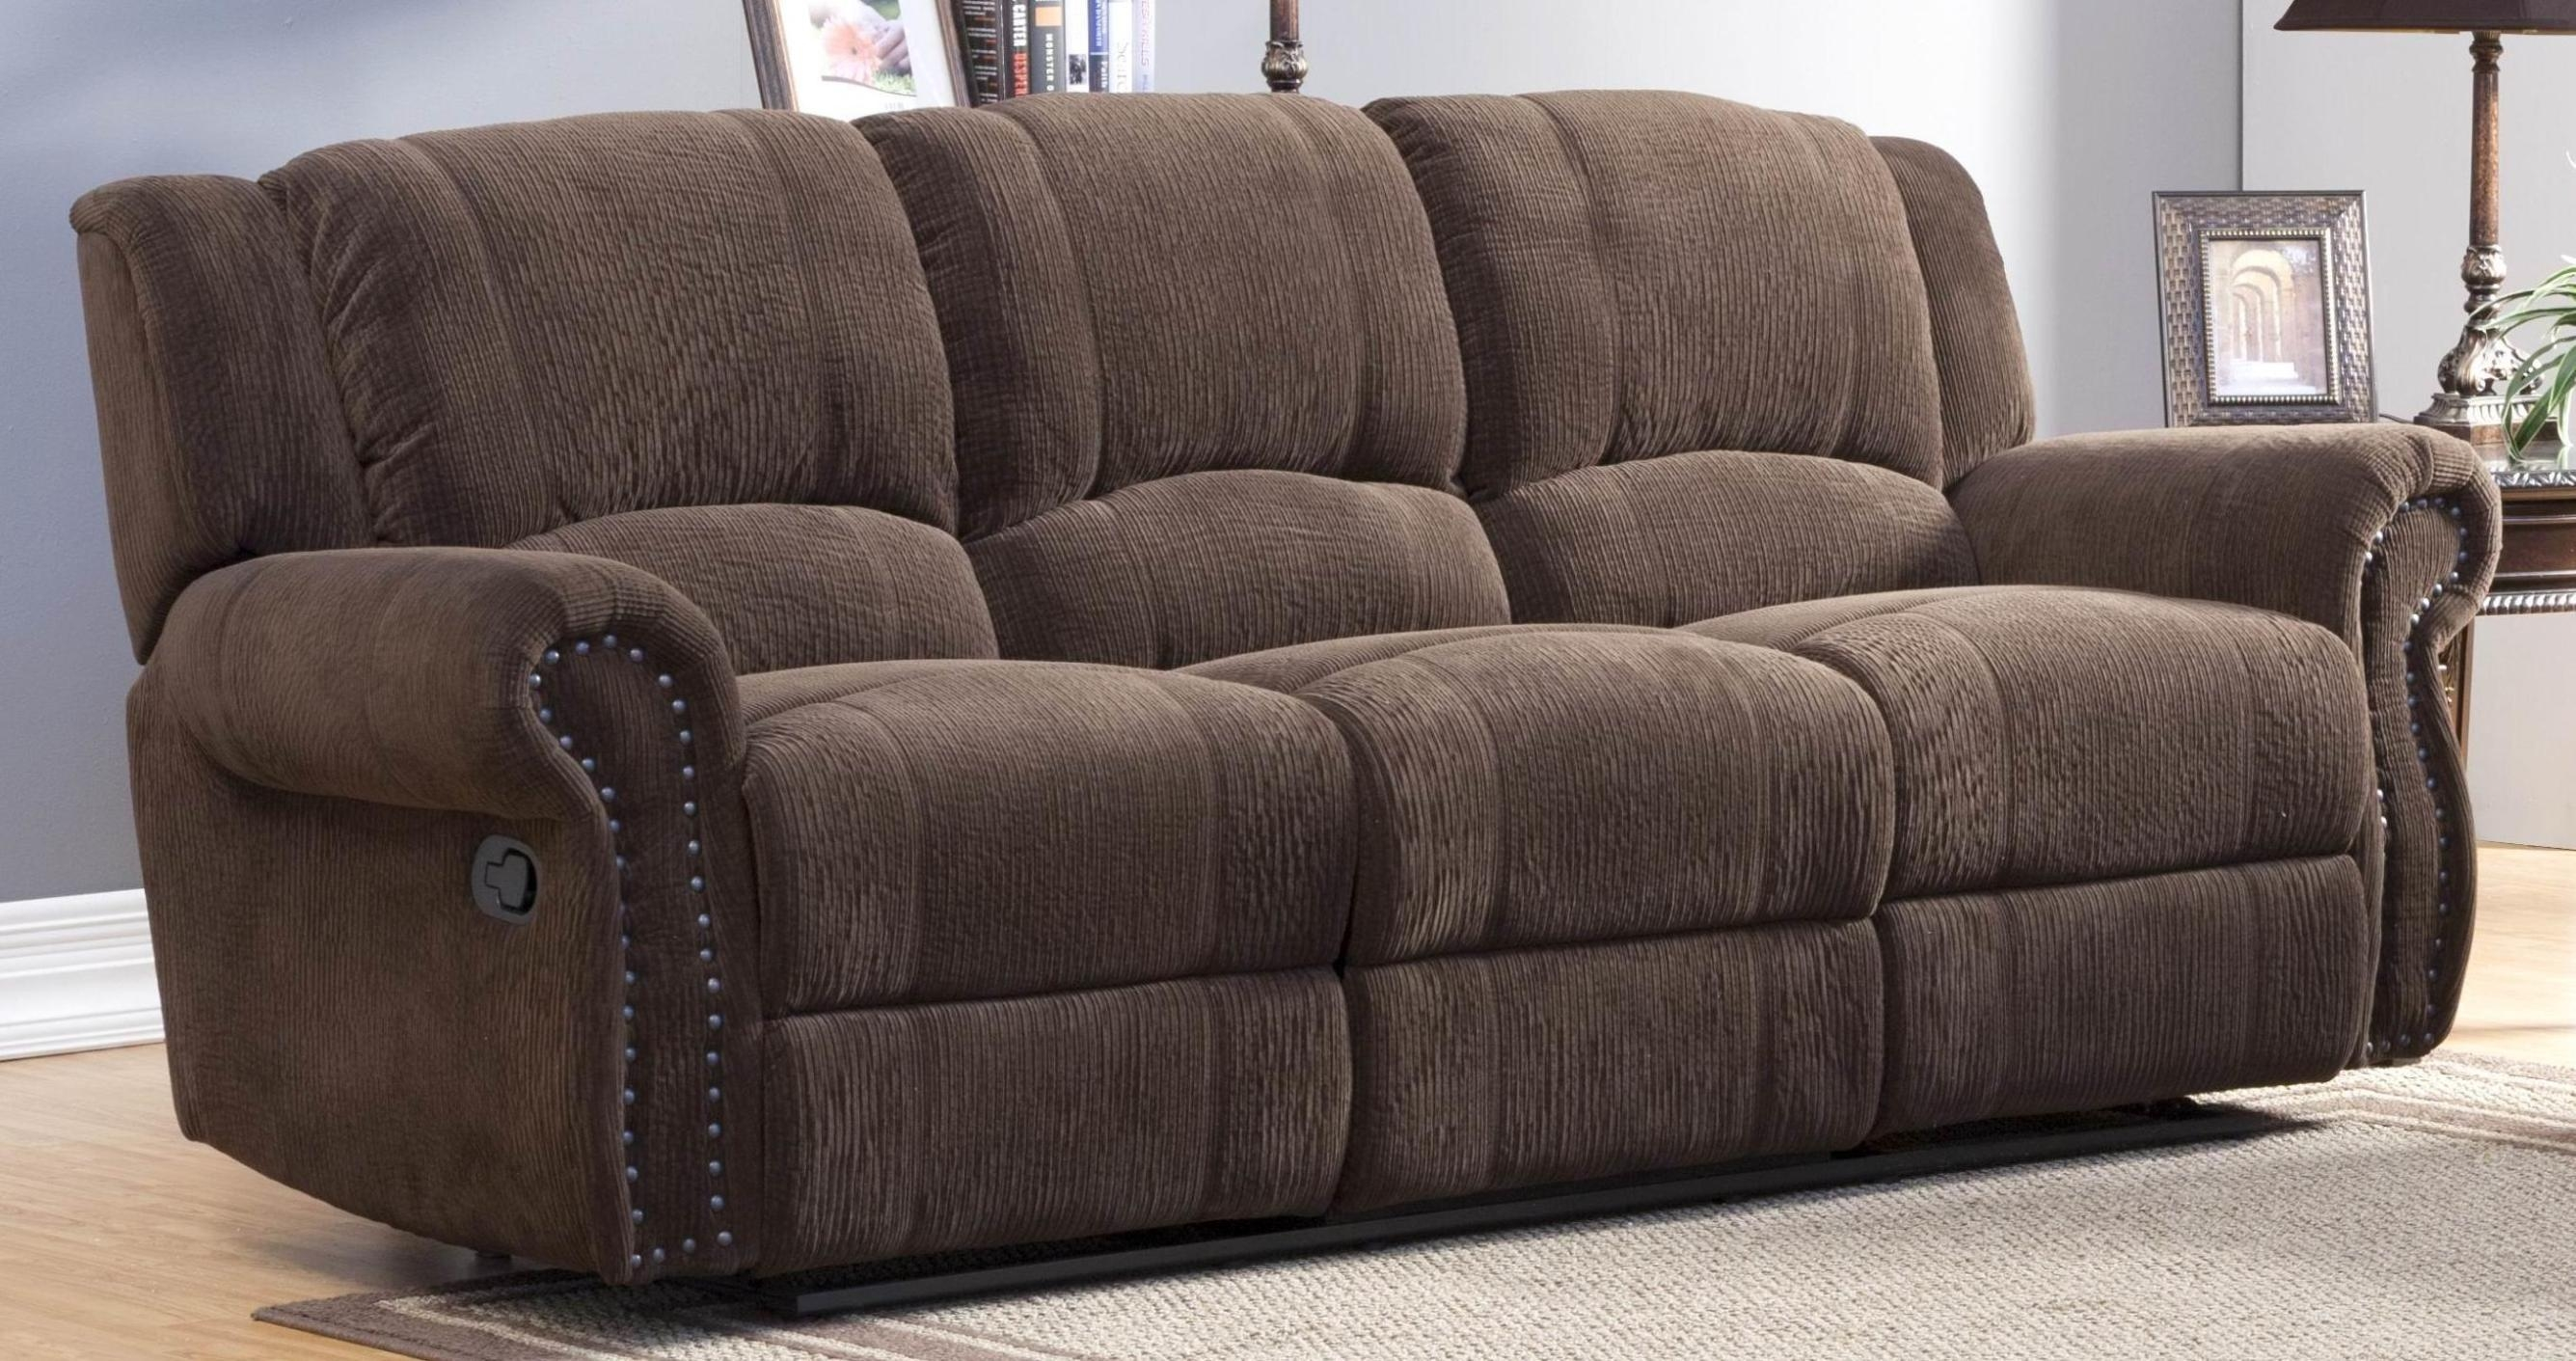 Reclining Sofa Covers | Tehranmix Decoration For Slipcover For Reclining Sofas (View 4 of 20)